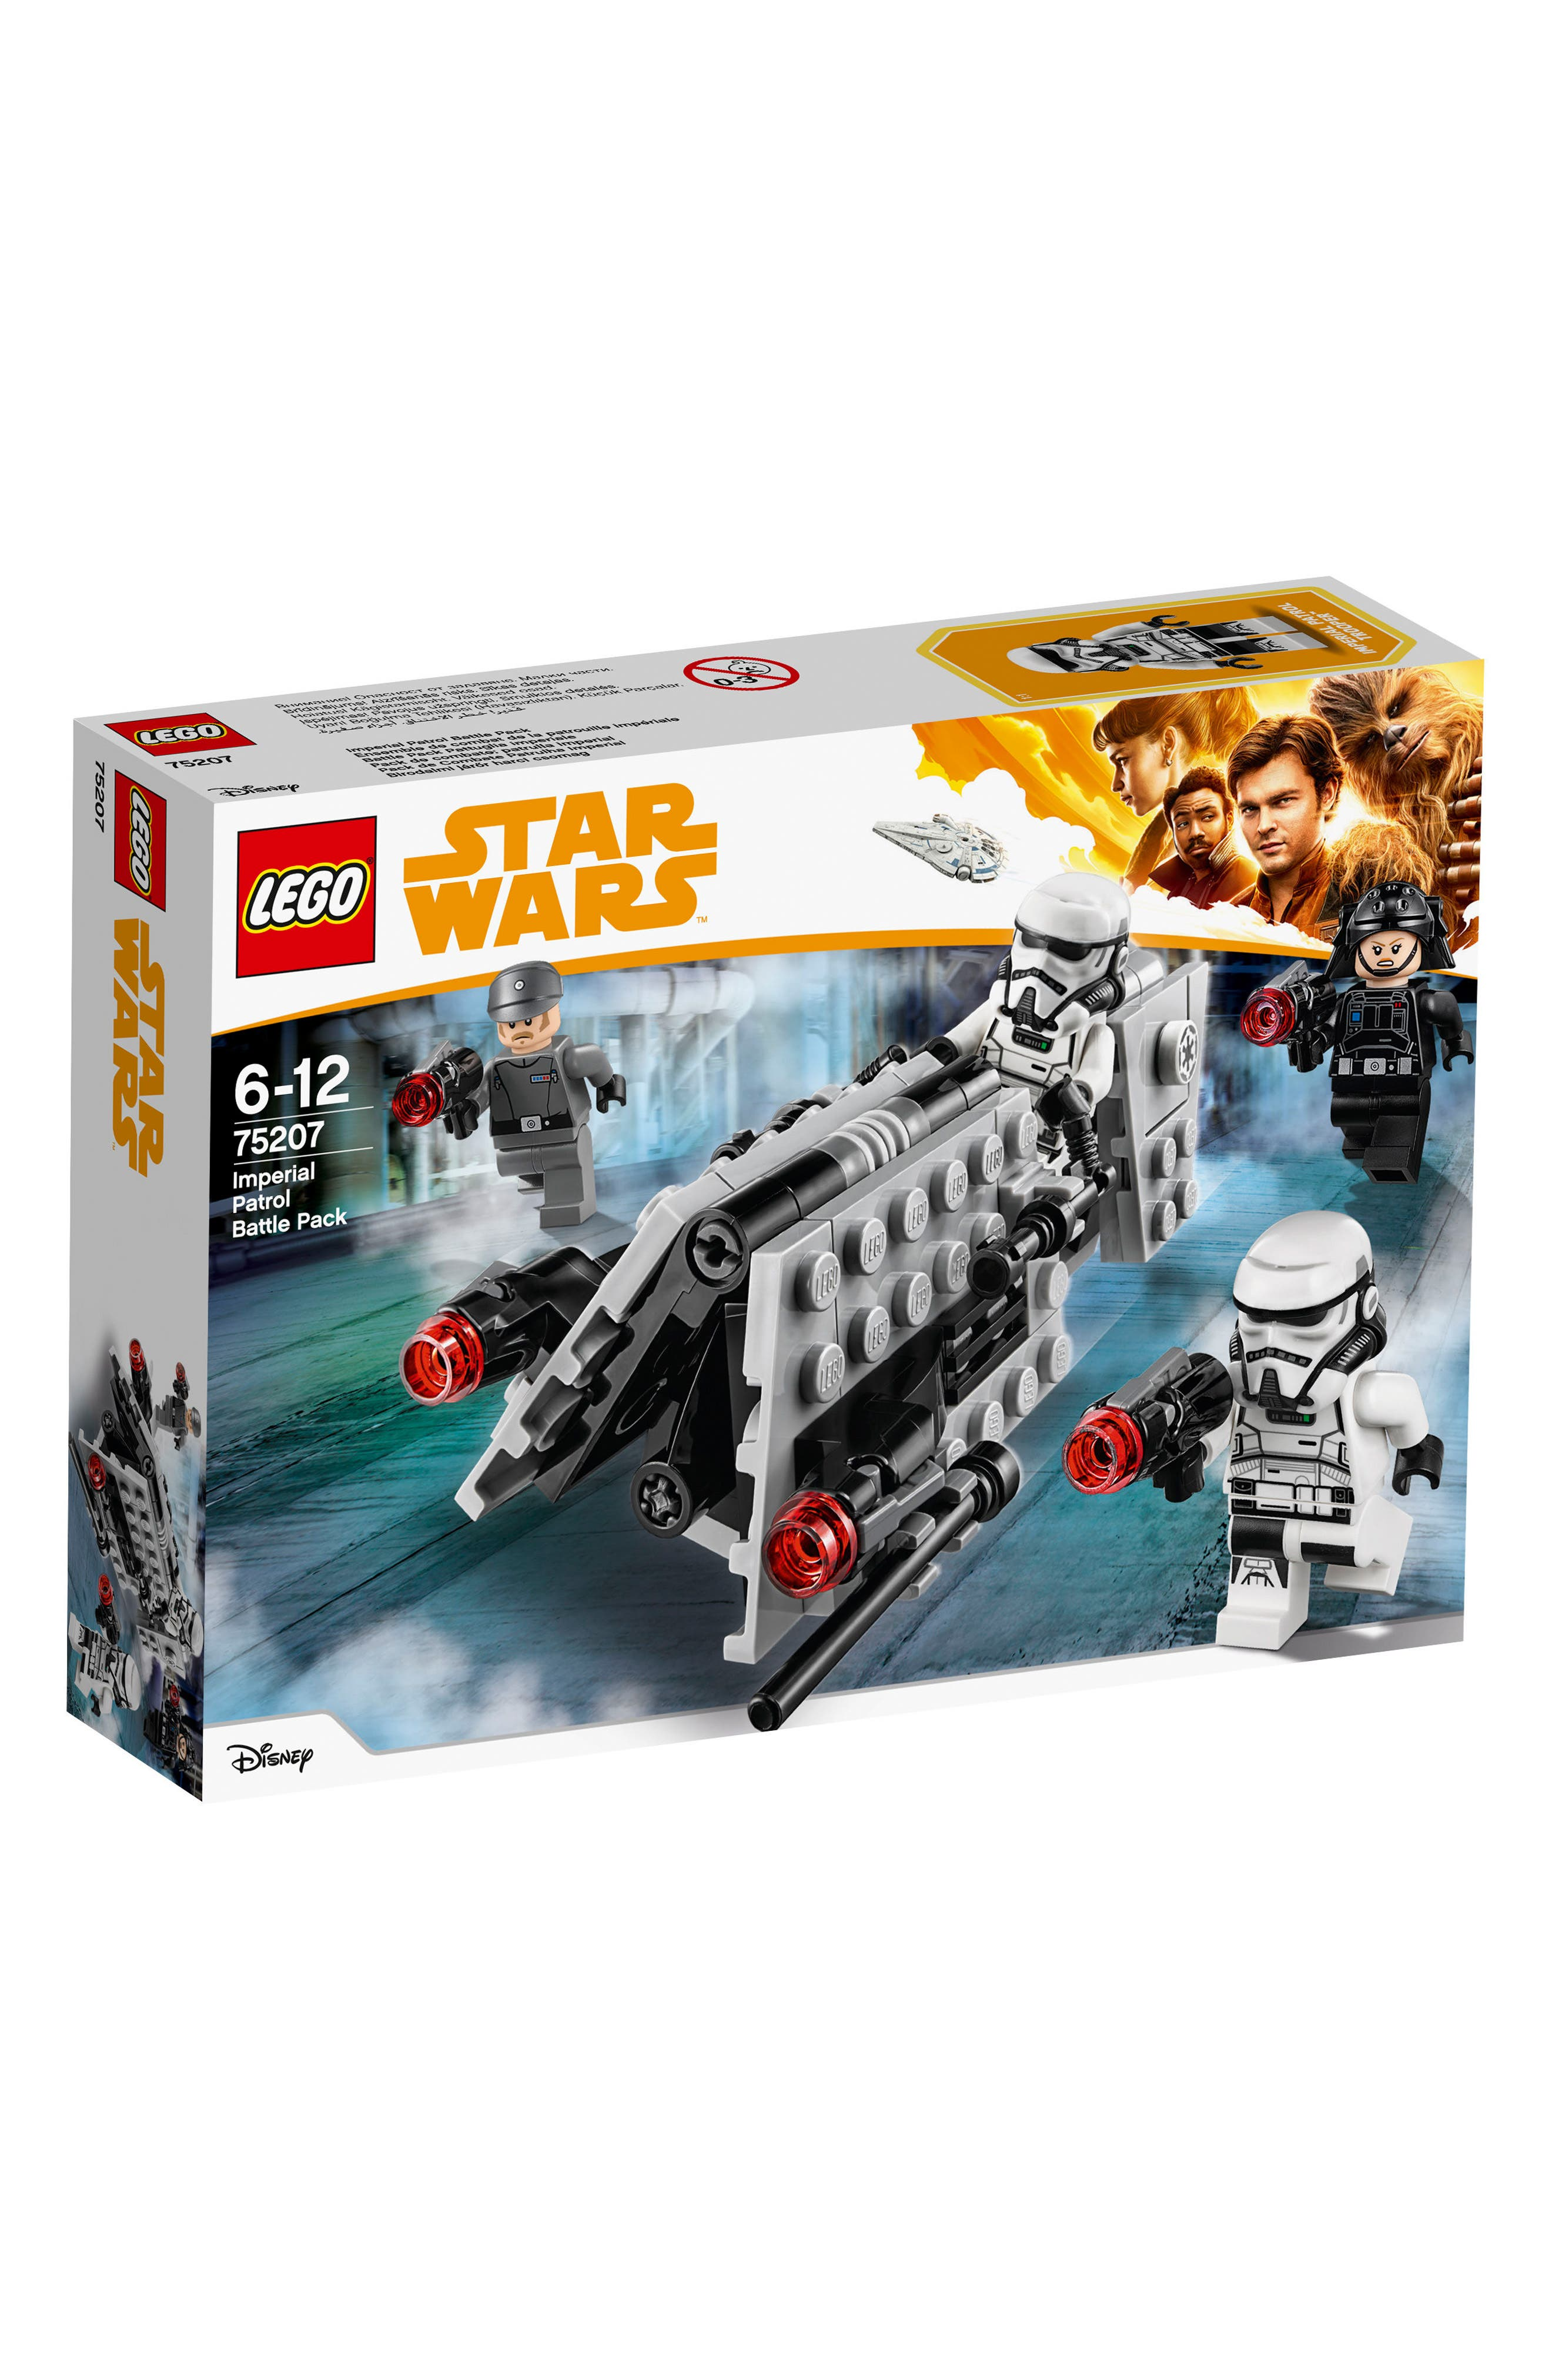 Star Wars<sup>®</sup> Imperial Patrol Battle Pack - 75207,                         Main,                         color, 020